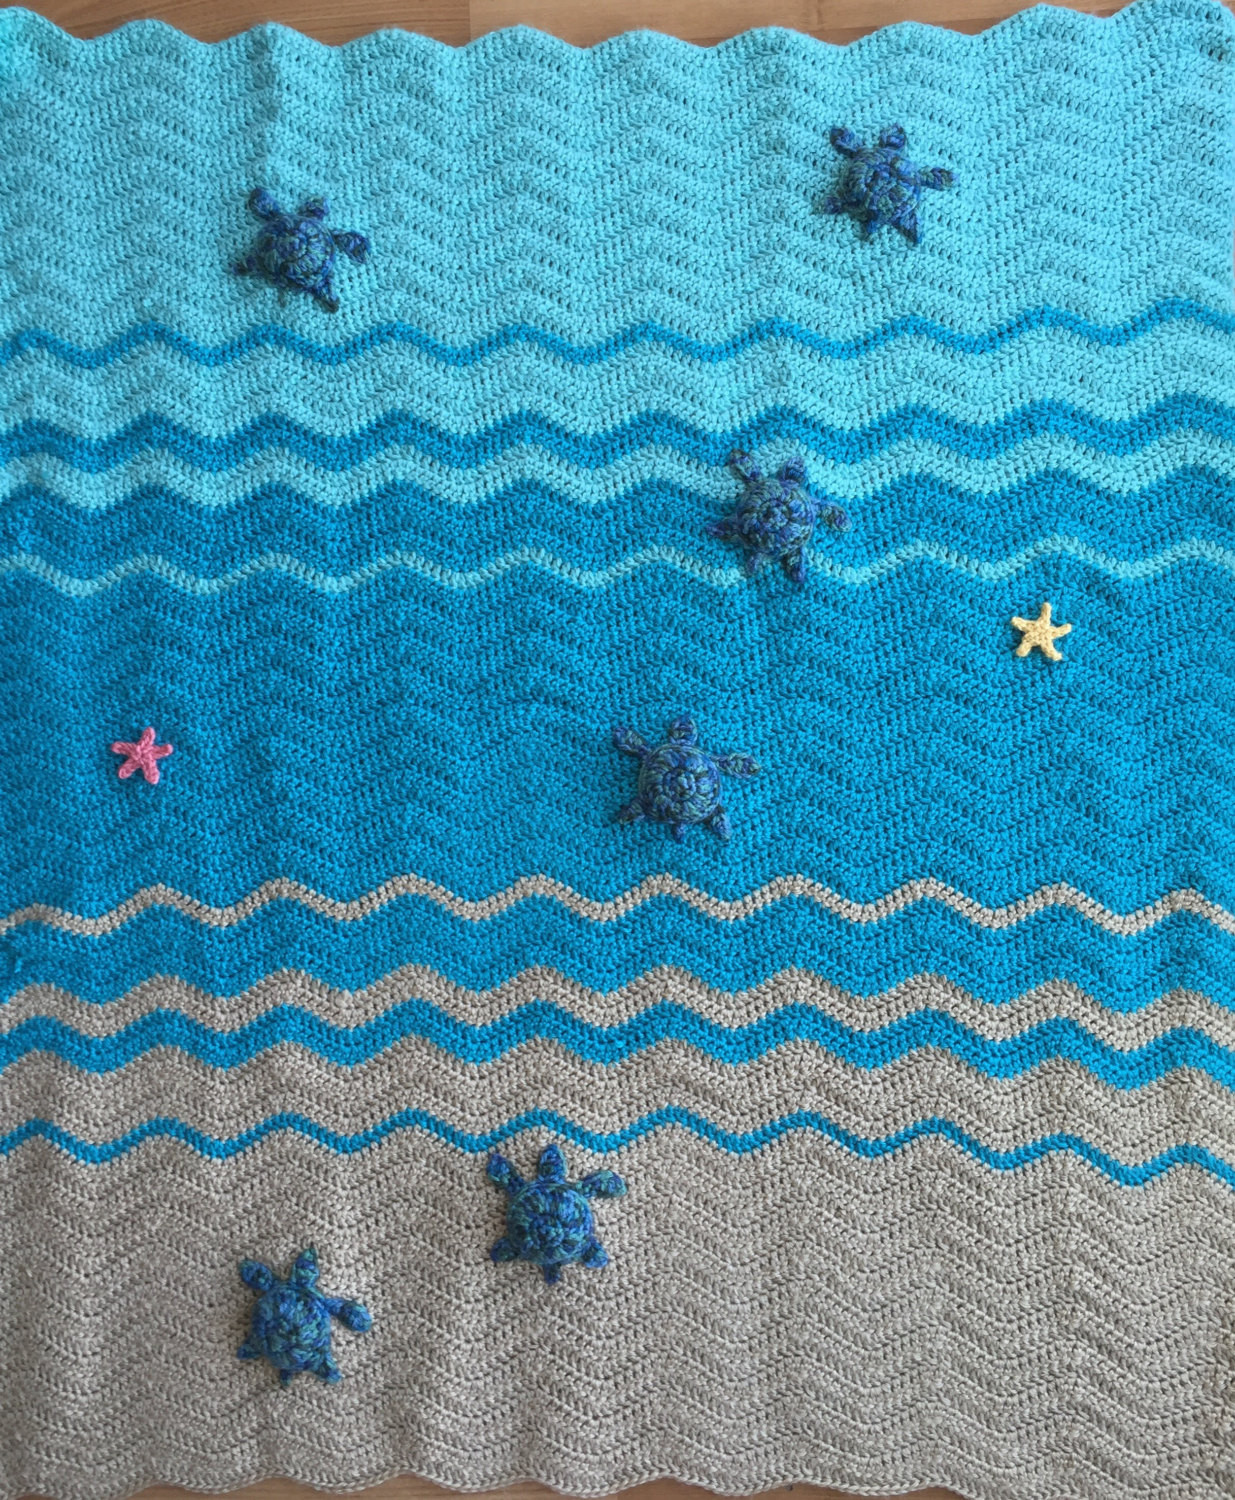 Elegant Sea Turtle and Sea Star Blanket Crochet Crib Blanket Baby Sea Turtle Crochet Blanket Pattern Of Beautiful Premier Sea Turtle Blanket Free Download – Premier Yarns Sea Turtle Crochet Blanket Pattern